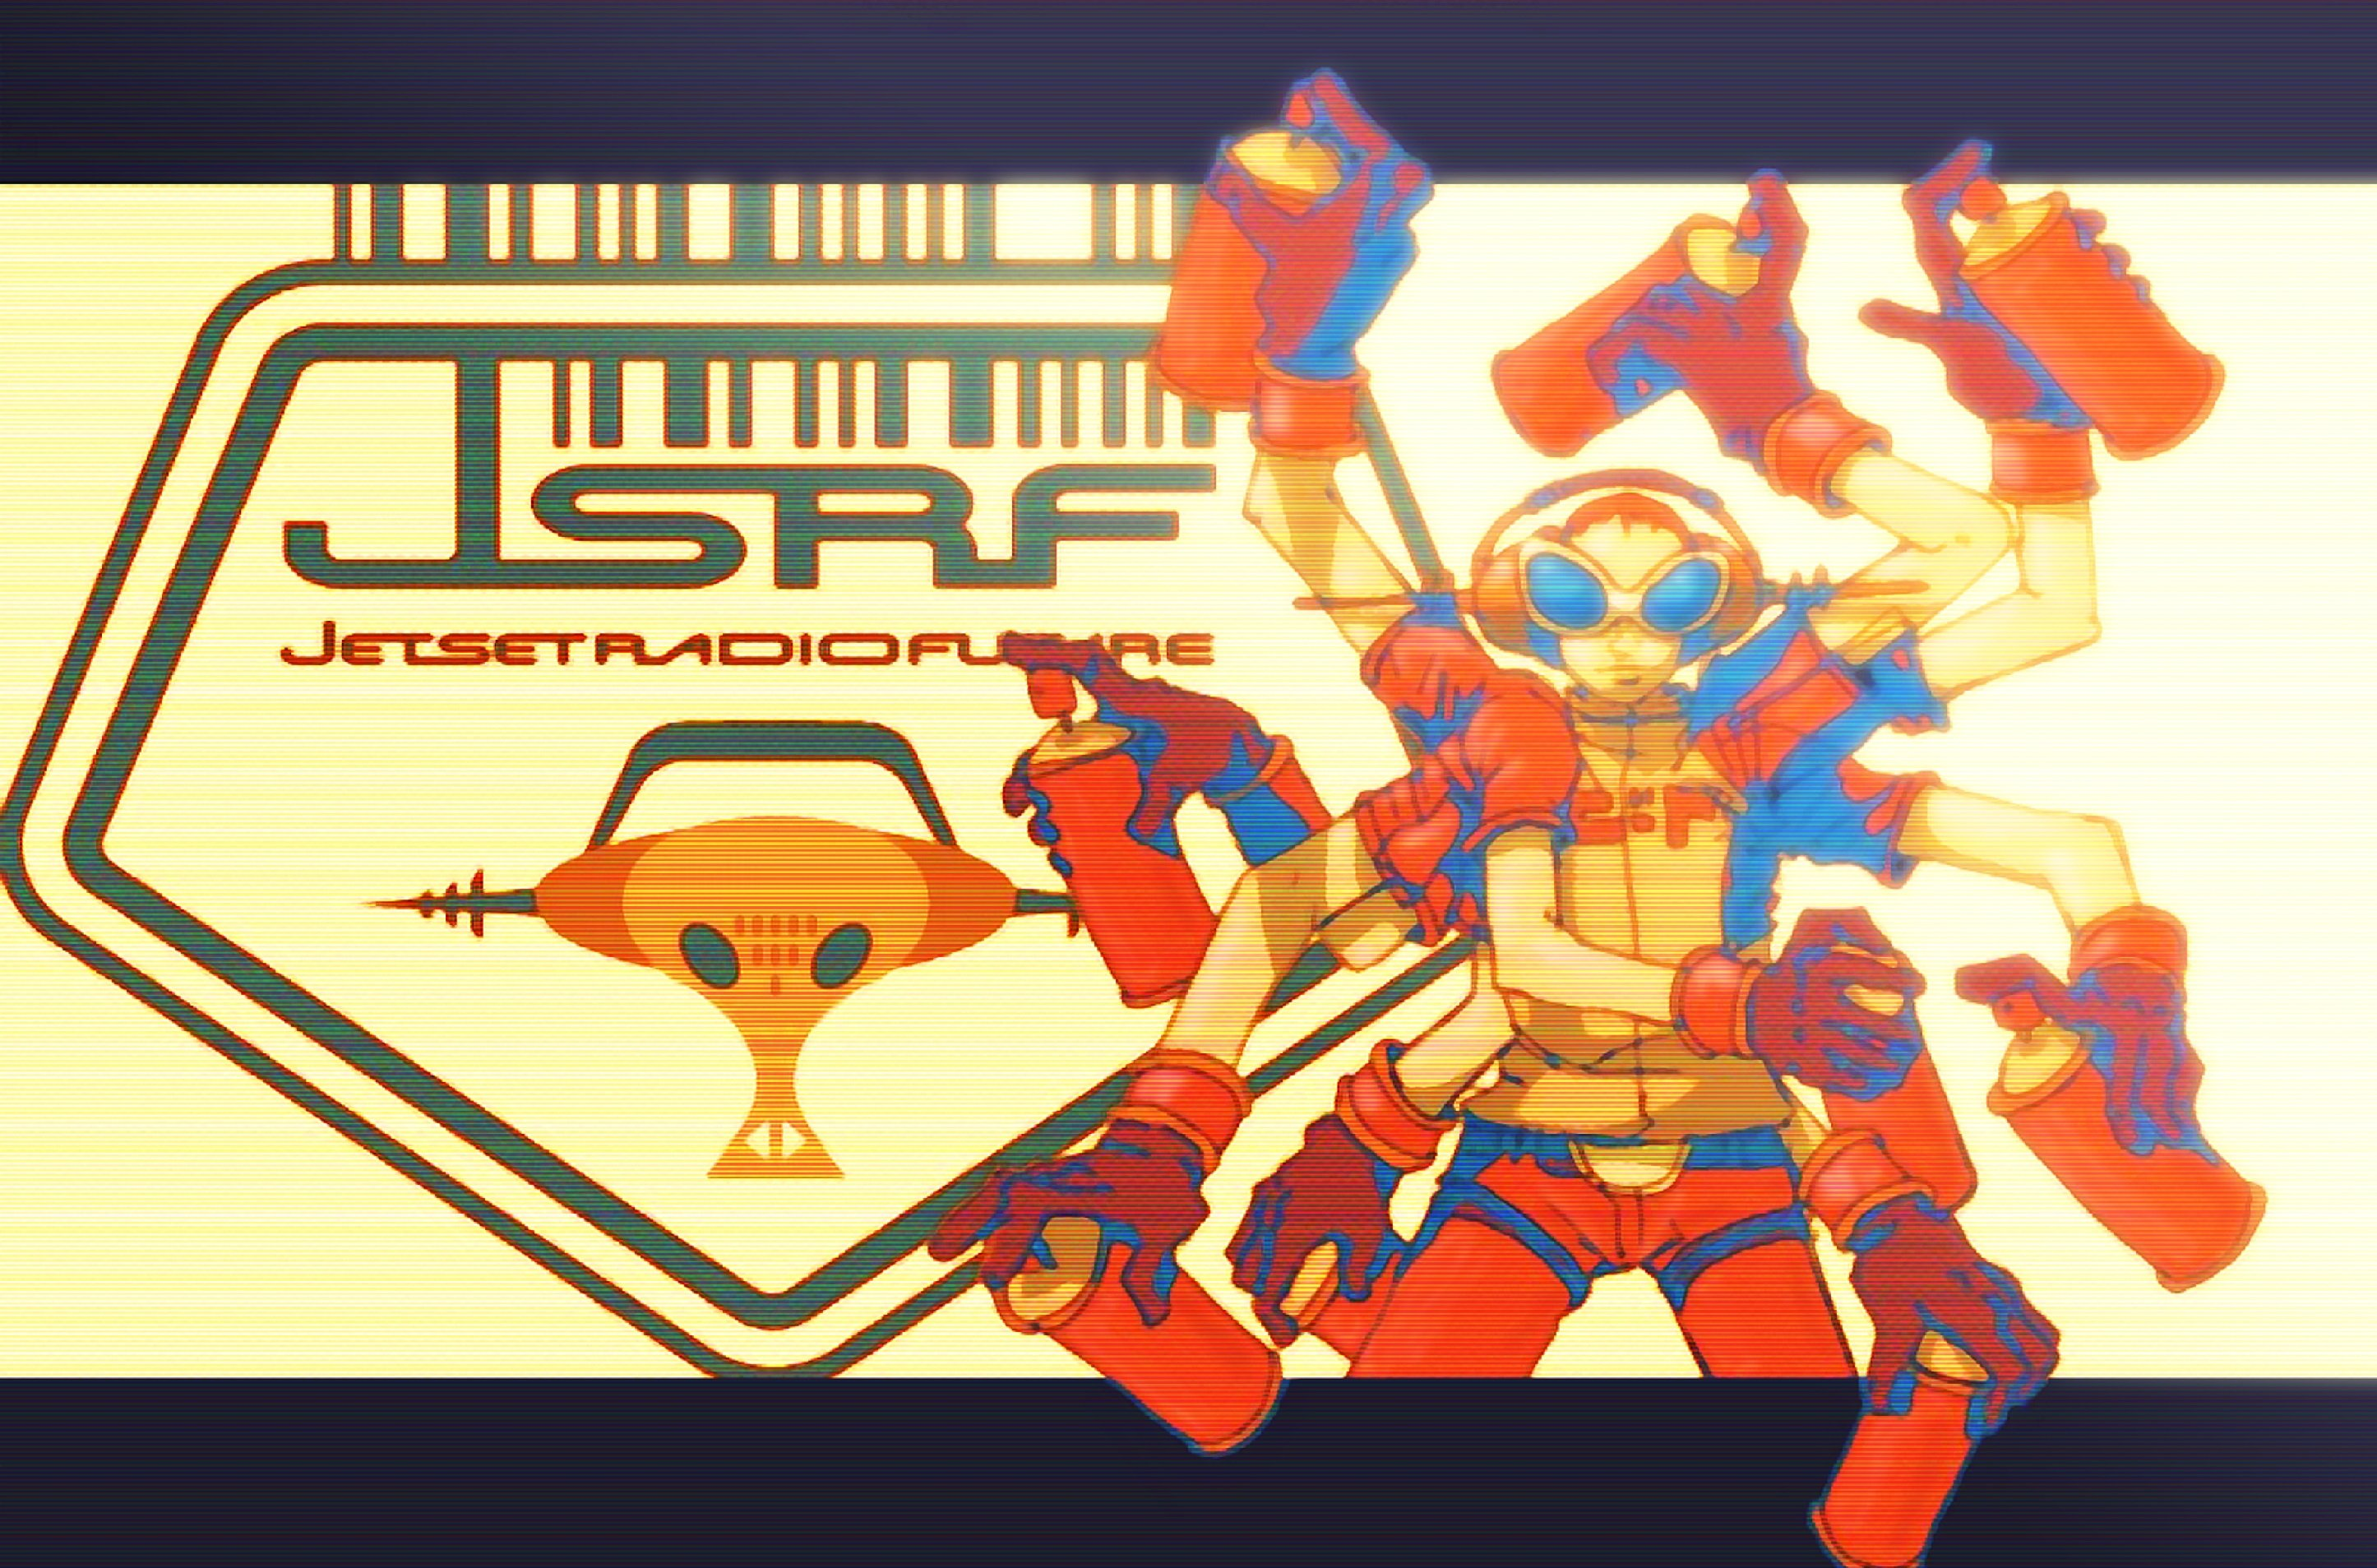 48 Jet Set Radio Future Wallpaper On Wallpapersafari